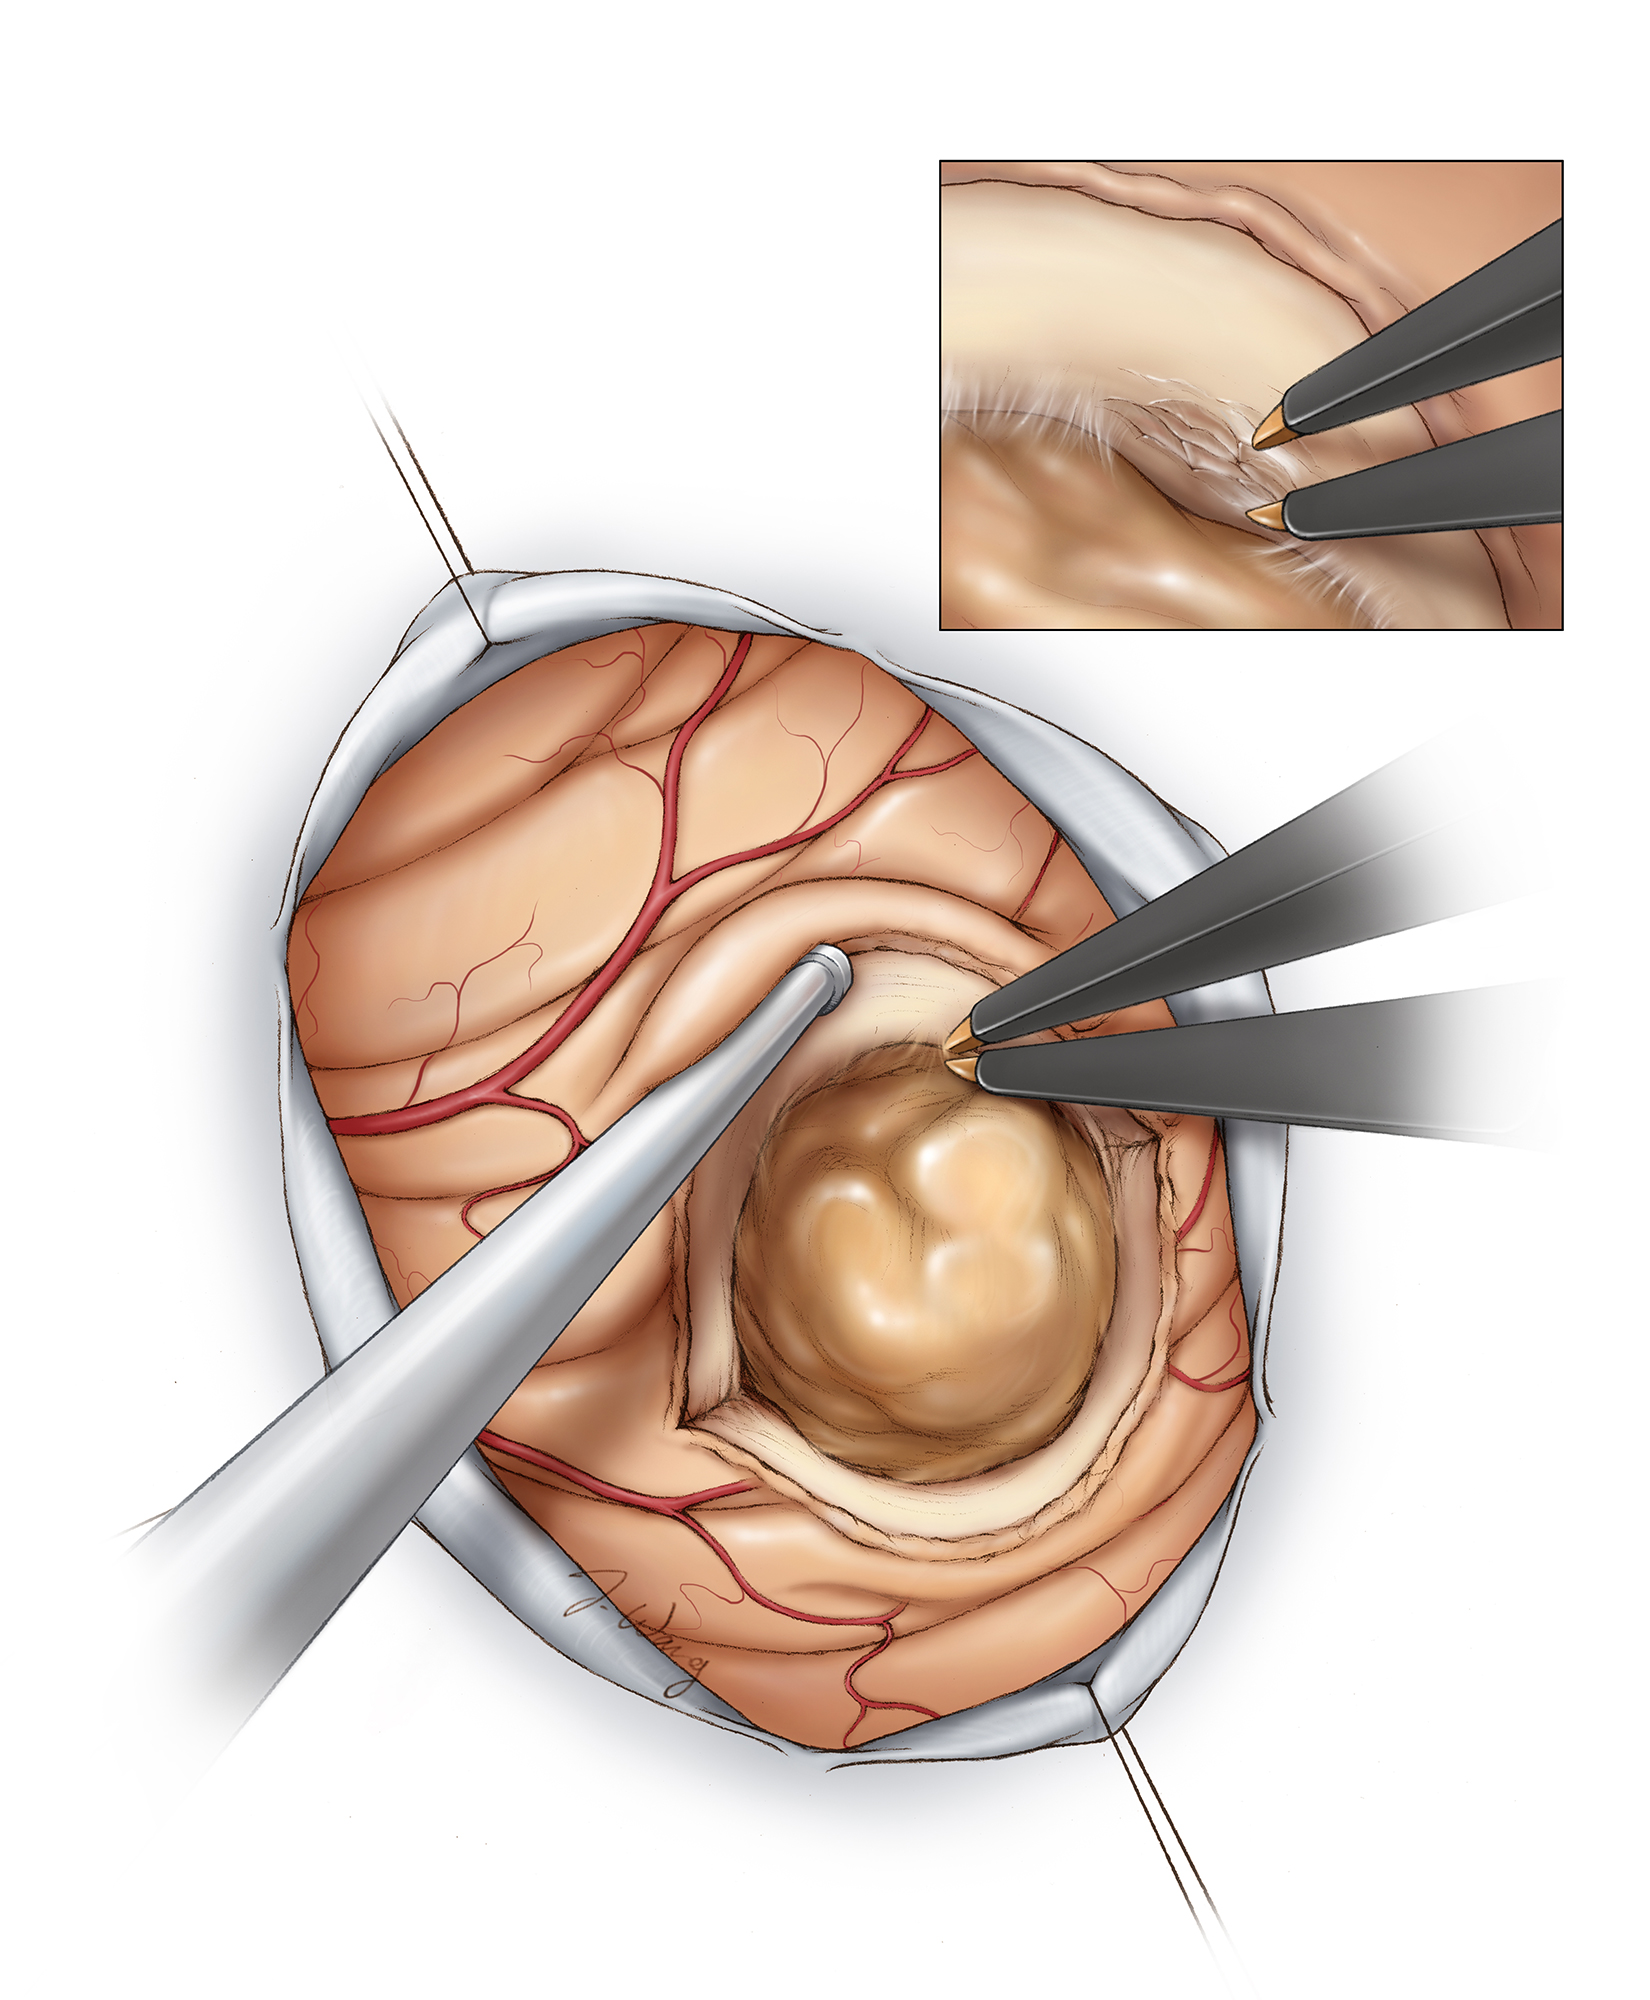 Figure 10: Once the posterior capsule is exposed, I use bipolar forceps to coagulate and disconnect the tumor capsule. I used these forceps like scissors and repeatedly open and close their tines to coagulate/emulsify 2-3 mm of the immediate peritumoral tissue, effectively devascularizing and isolating the mass (inset image). The suction device dynamically mobilizes the surrounding brain.